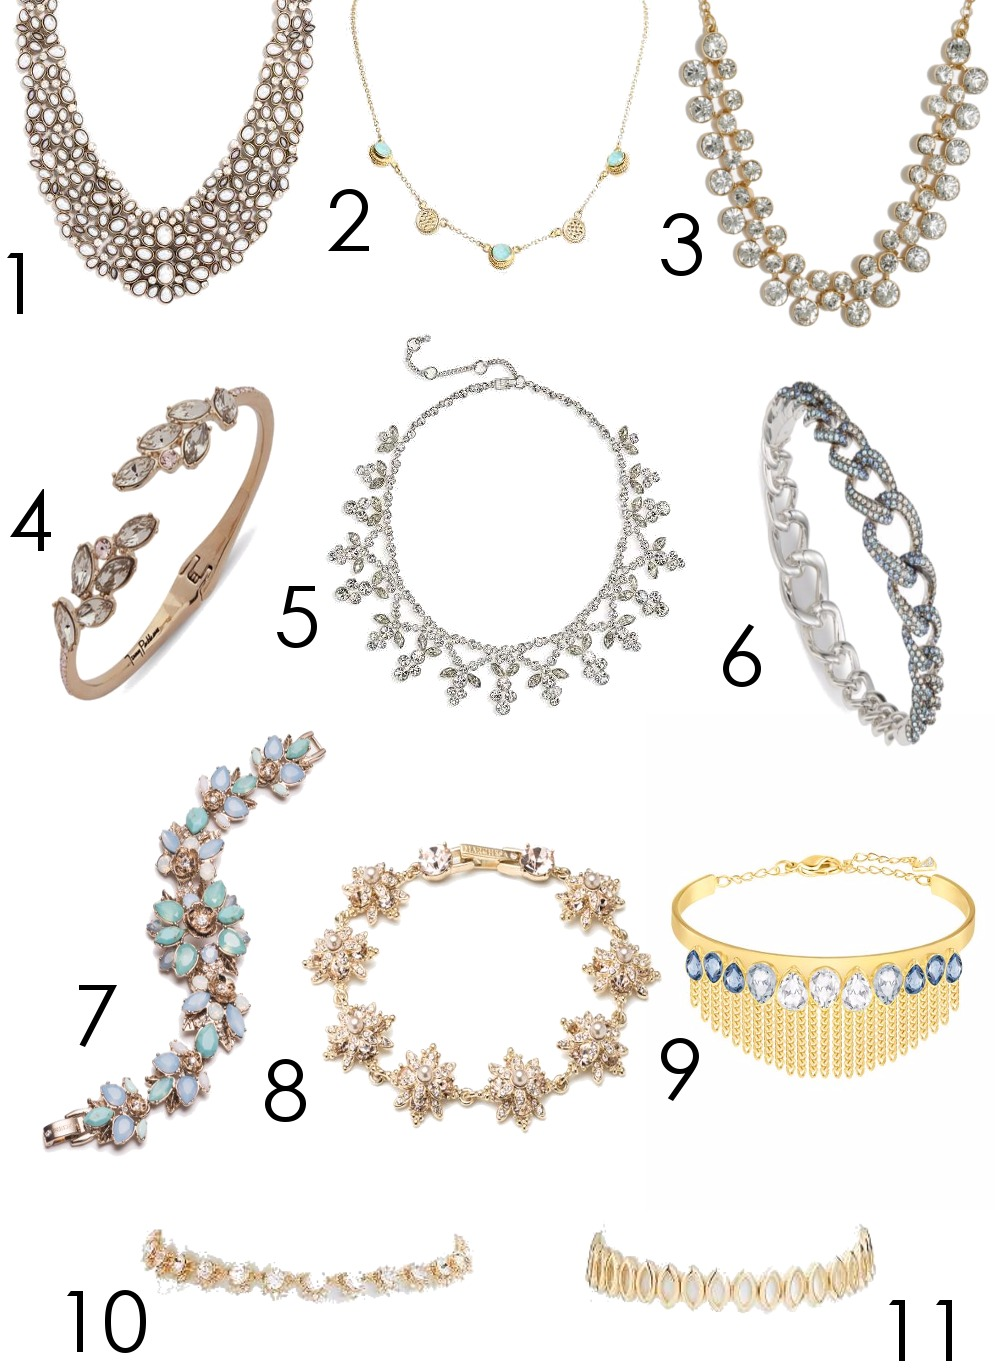 2017 Summer Wedding Jewelry I Dream in Lace